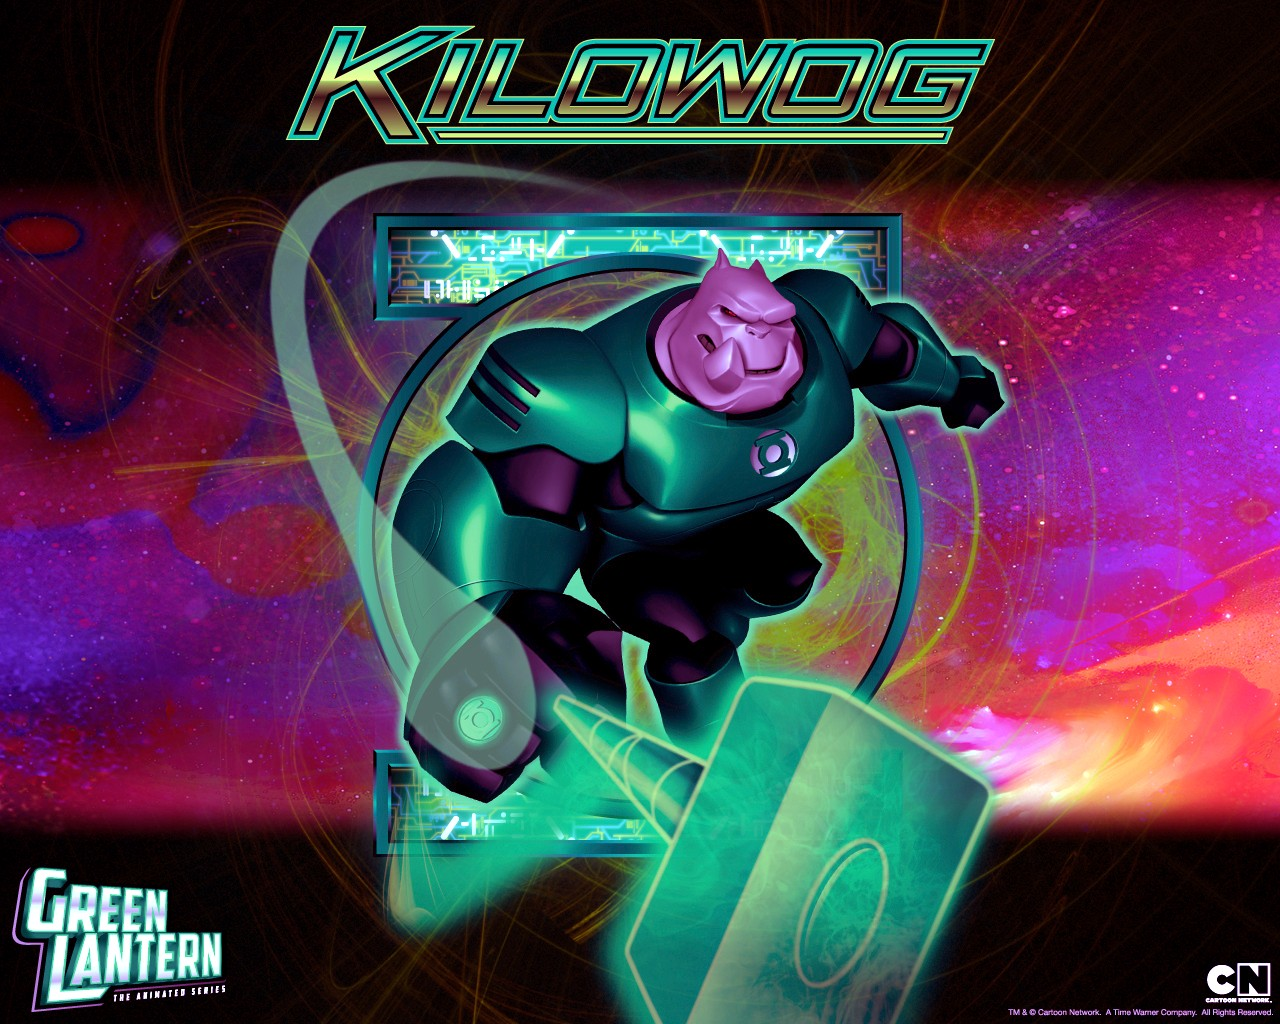 Green Lantern Animated Series - Kilowog